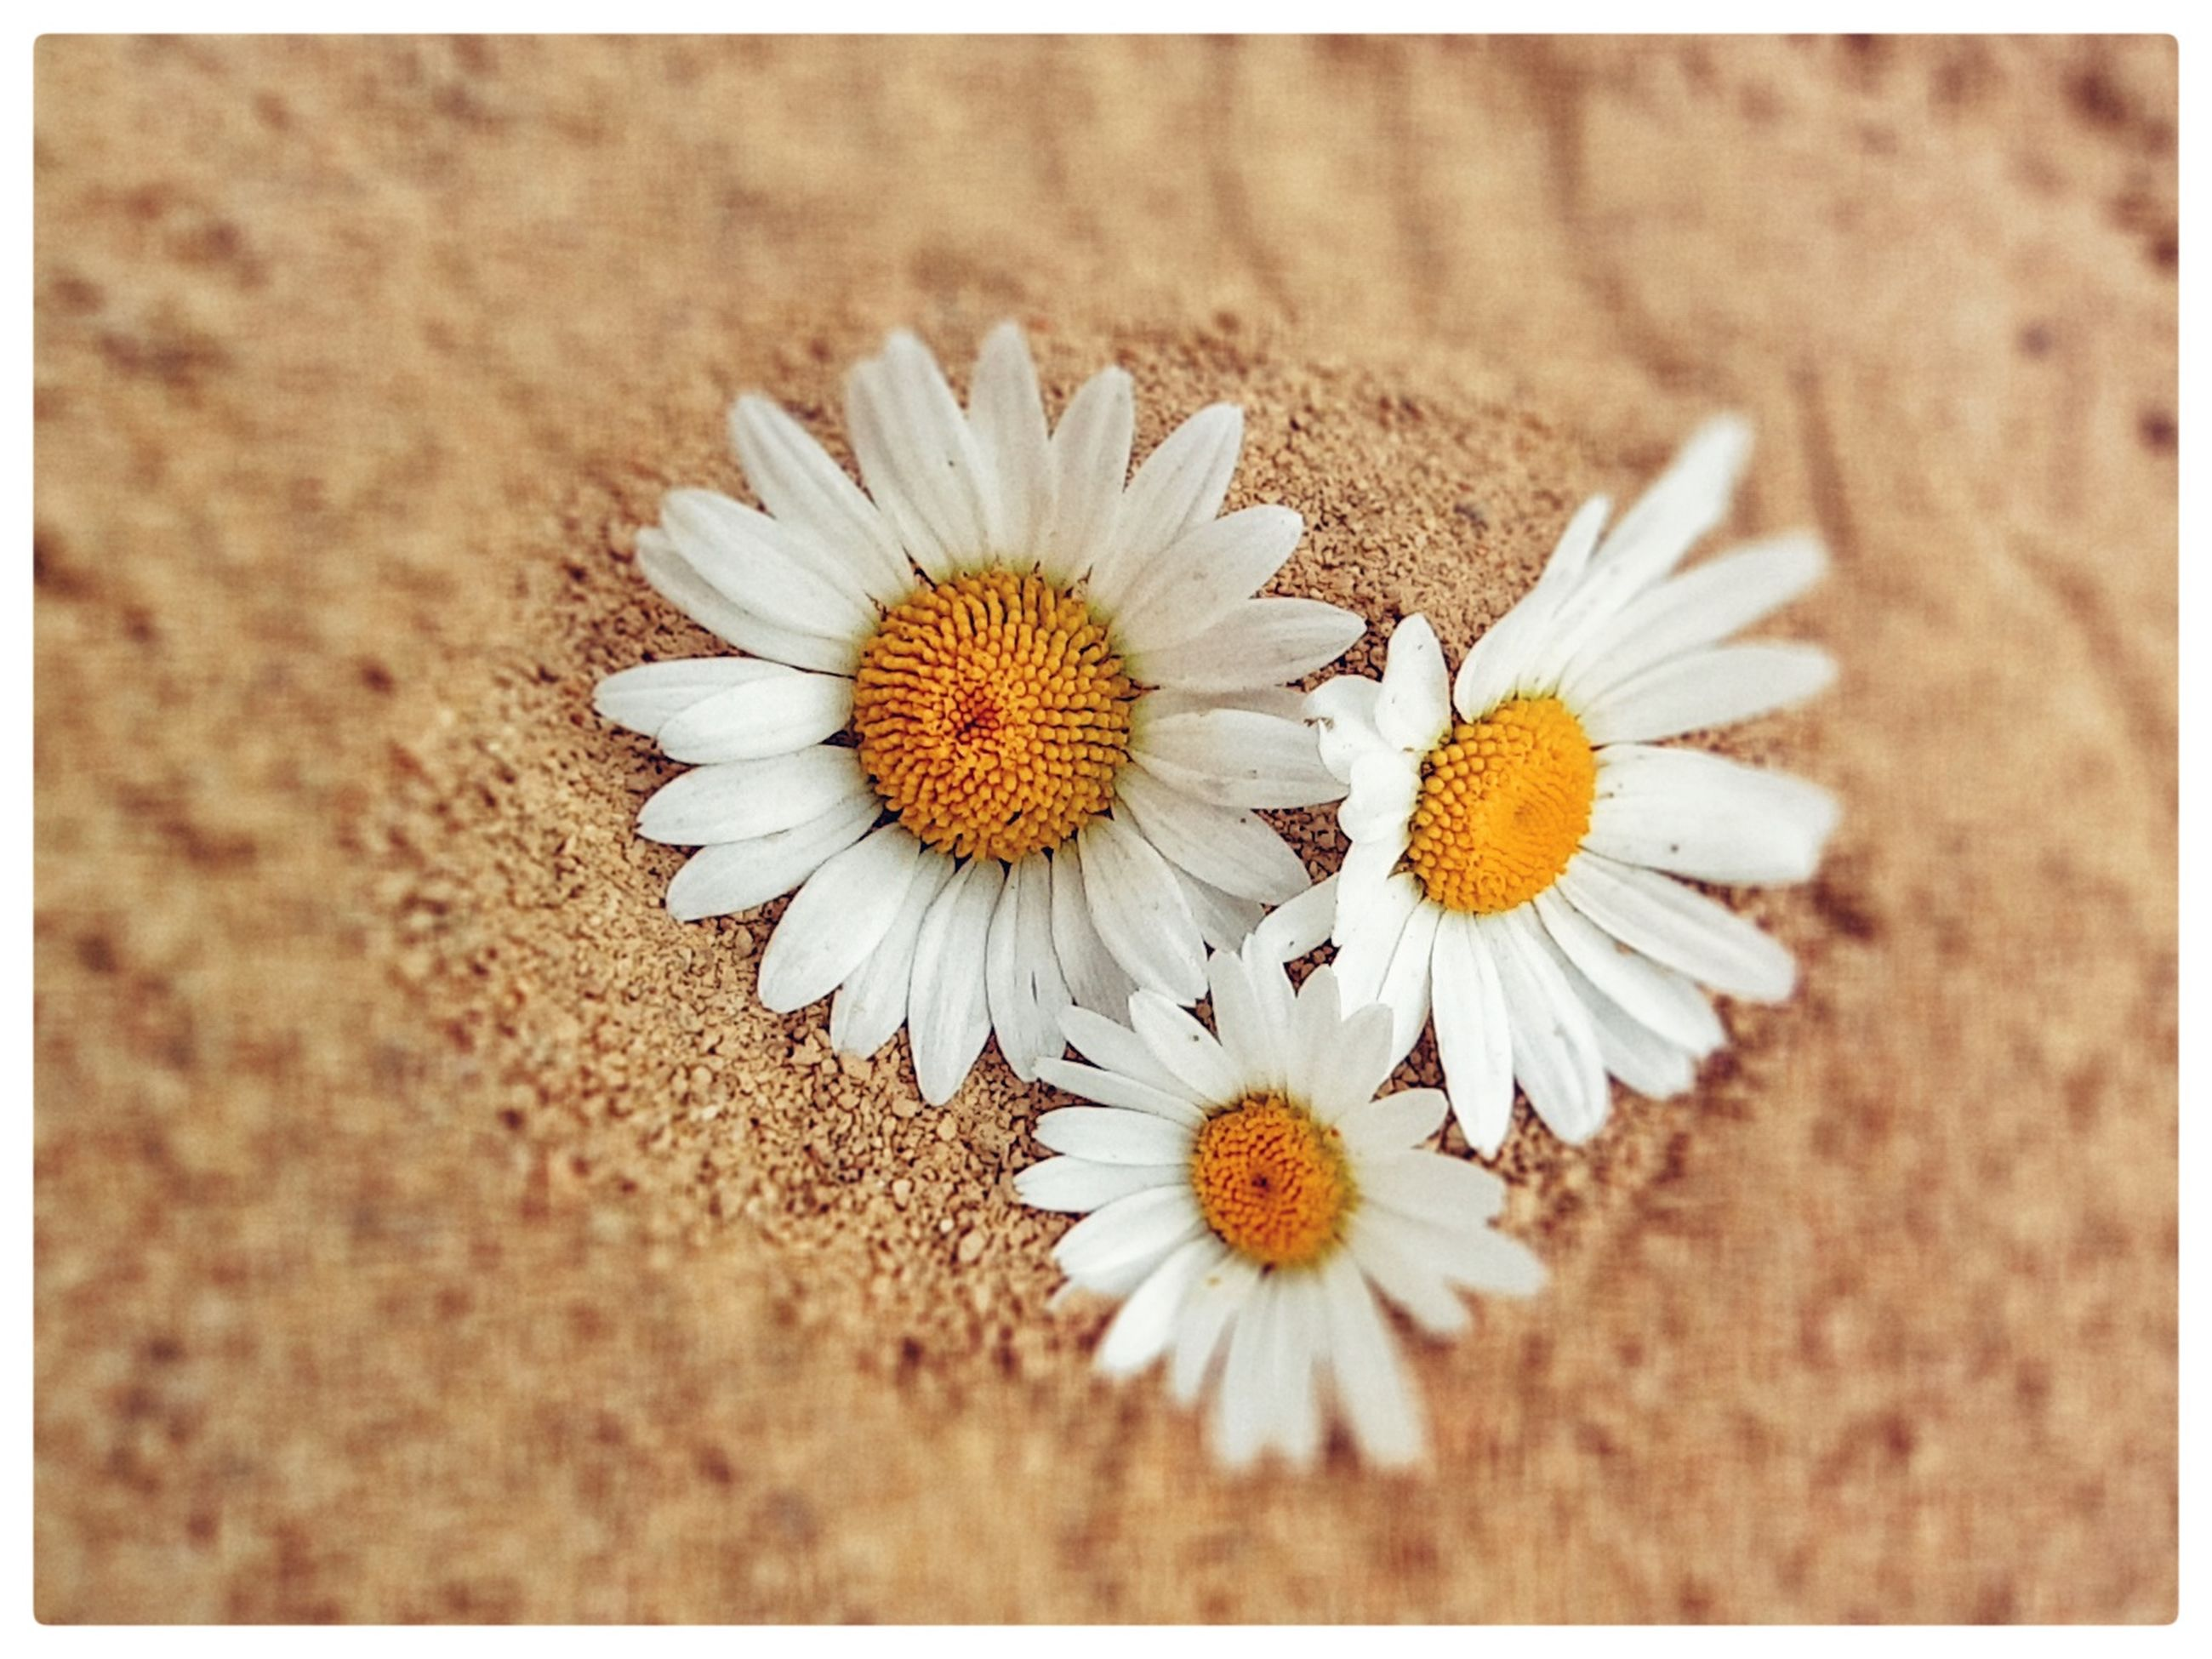 flower, flowering plant, plant, freshness, beauty in nature, fragility, flower head, nature, close-up, petal, auto post production filter, daisy, transfer print, pollen, inflorescence, no people, growth, white, yellow, land, outdoors, directly above, day, high angle view